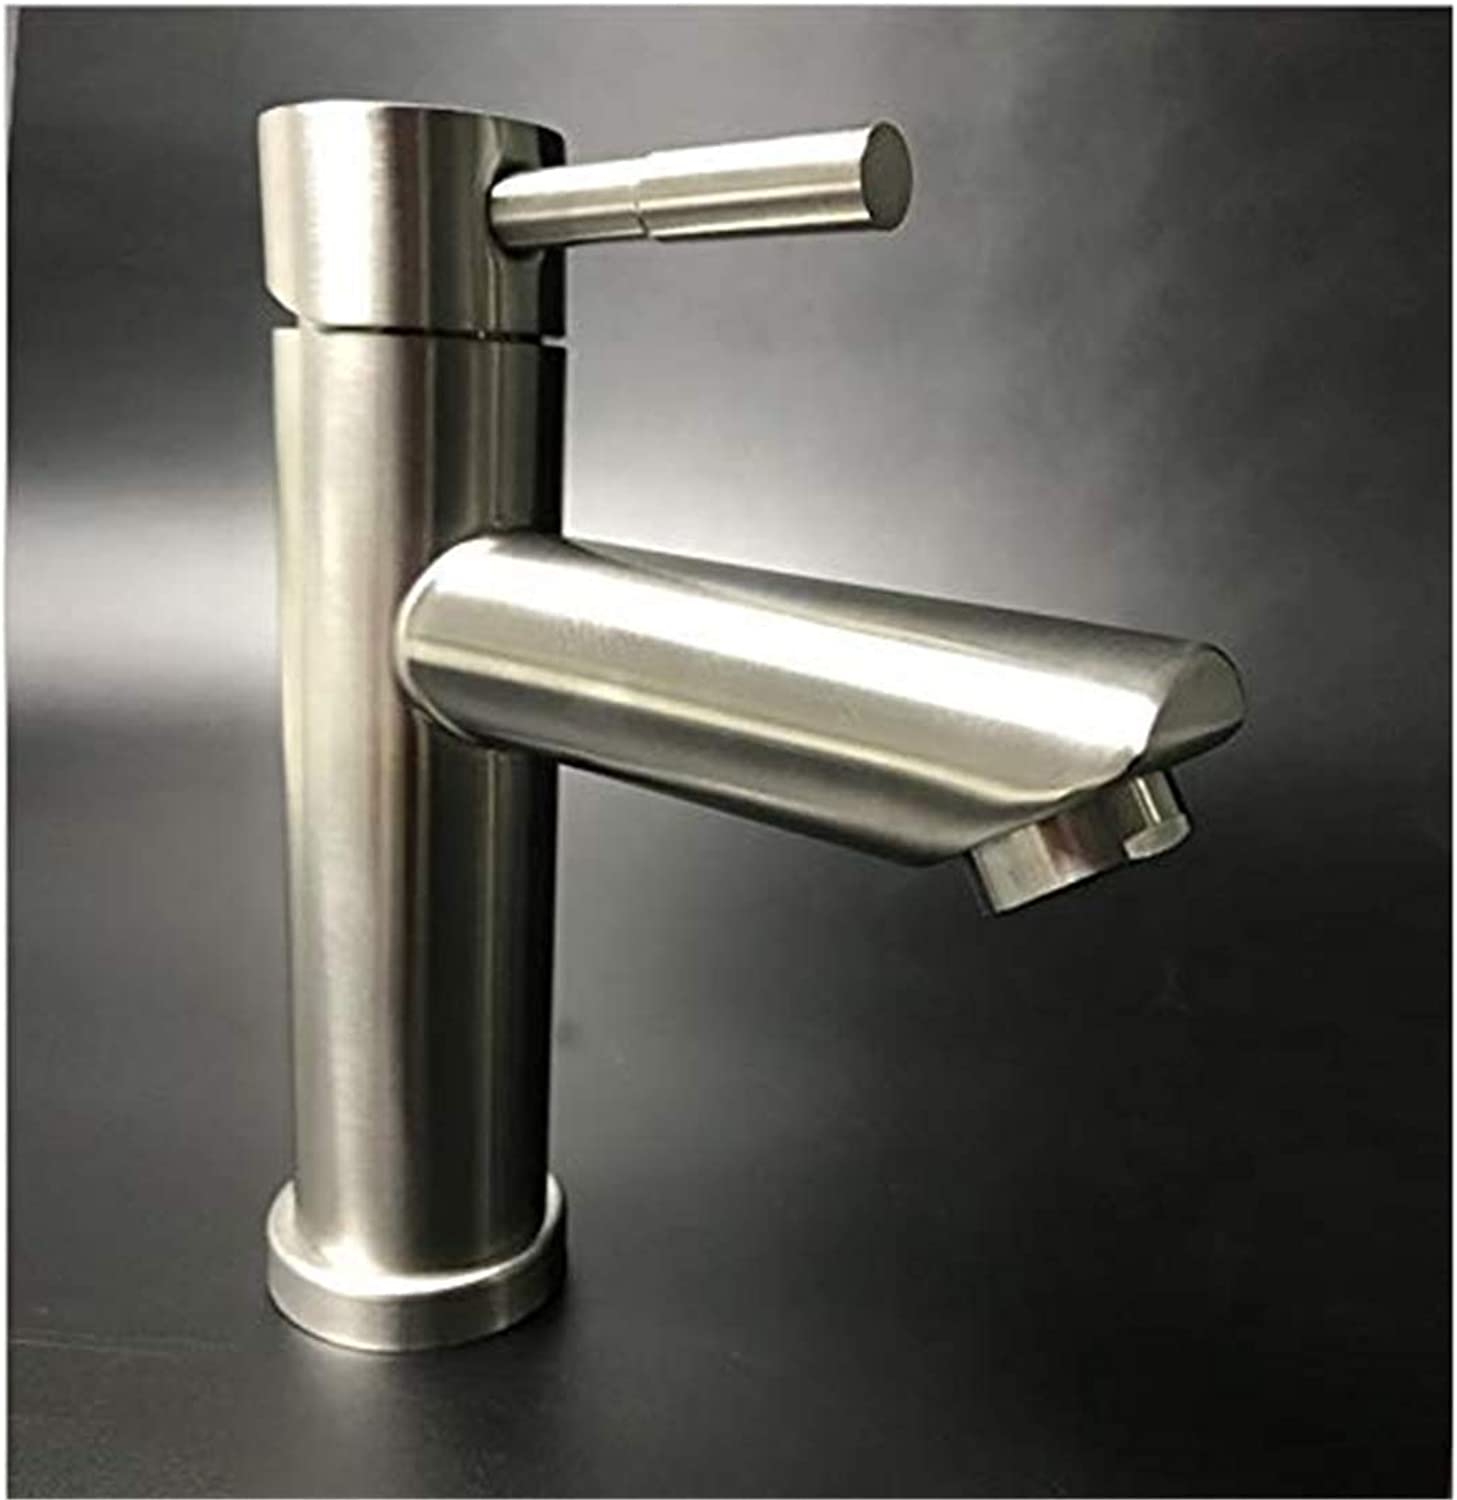 Modern Double Basin Sink Hot and Cold Water Faucet5Asfgose